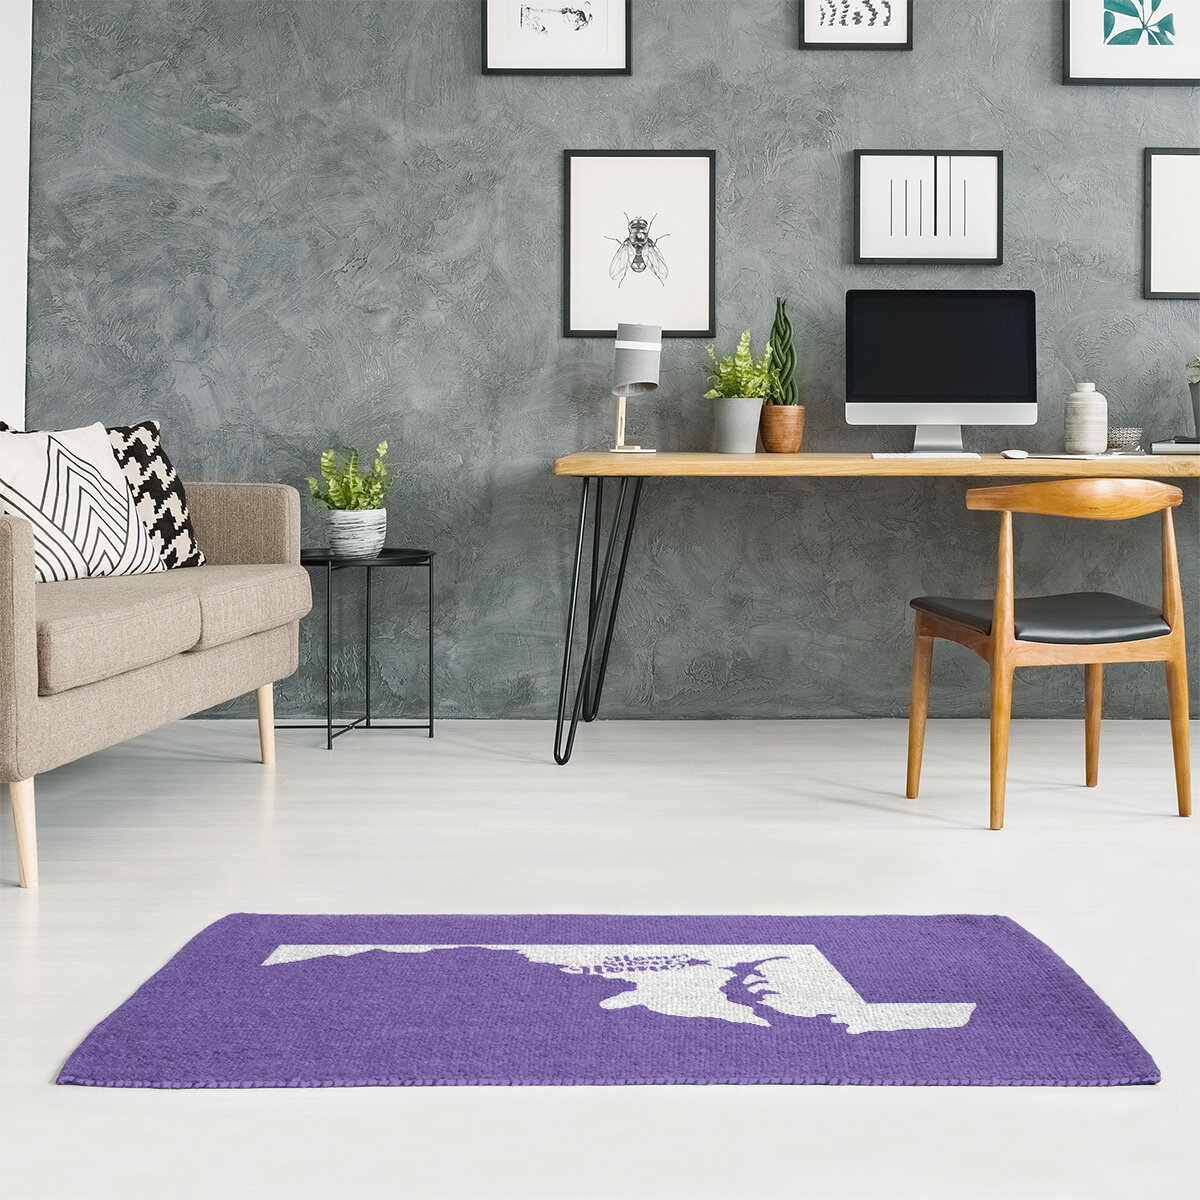 East Urban Home Baltimore Home Sweet Home Purple Area Rug Wayfair